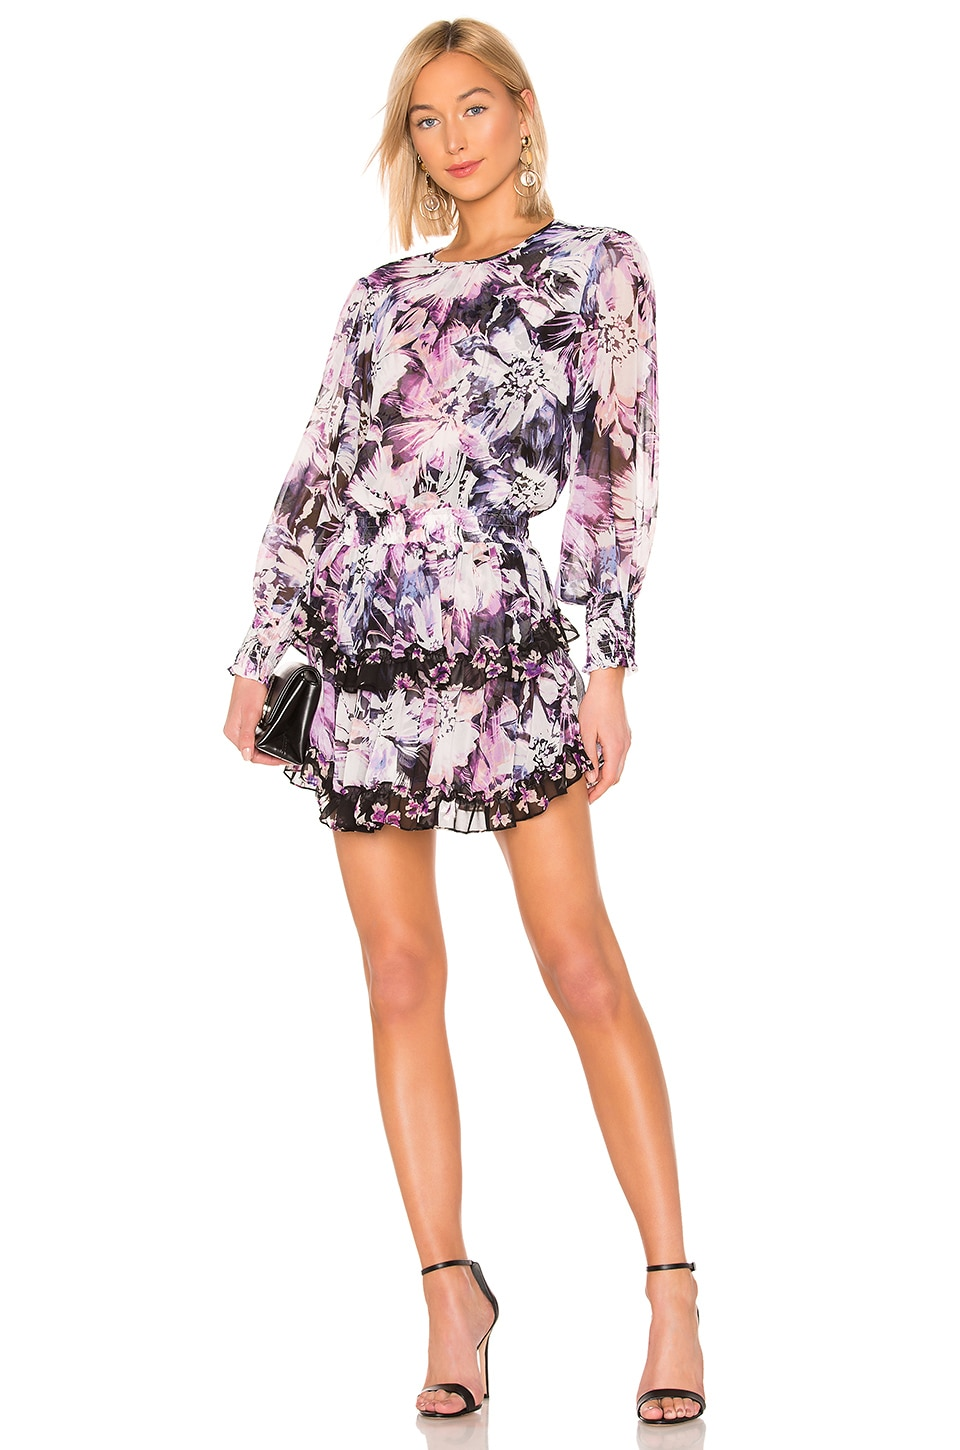 MISA Los Angeles Camila Dress in Purple Floral